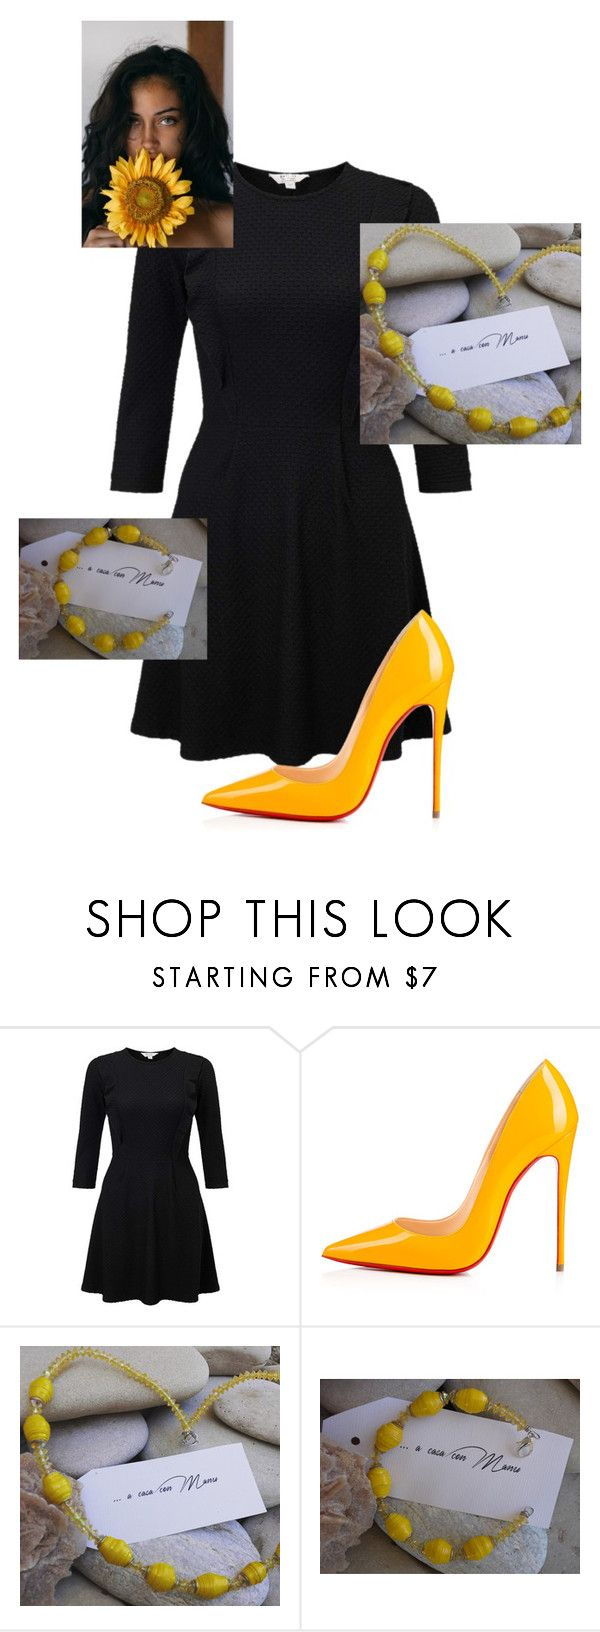 """girasole"" by acasaconmanu ❤ liked on Polyvore featuring Miss Selfridge, Christian Louboutin and Giallo"